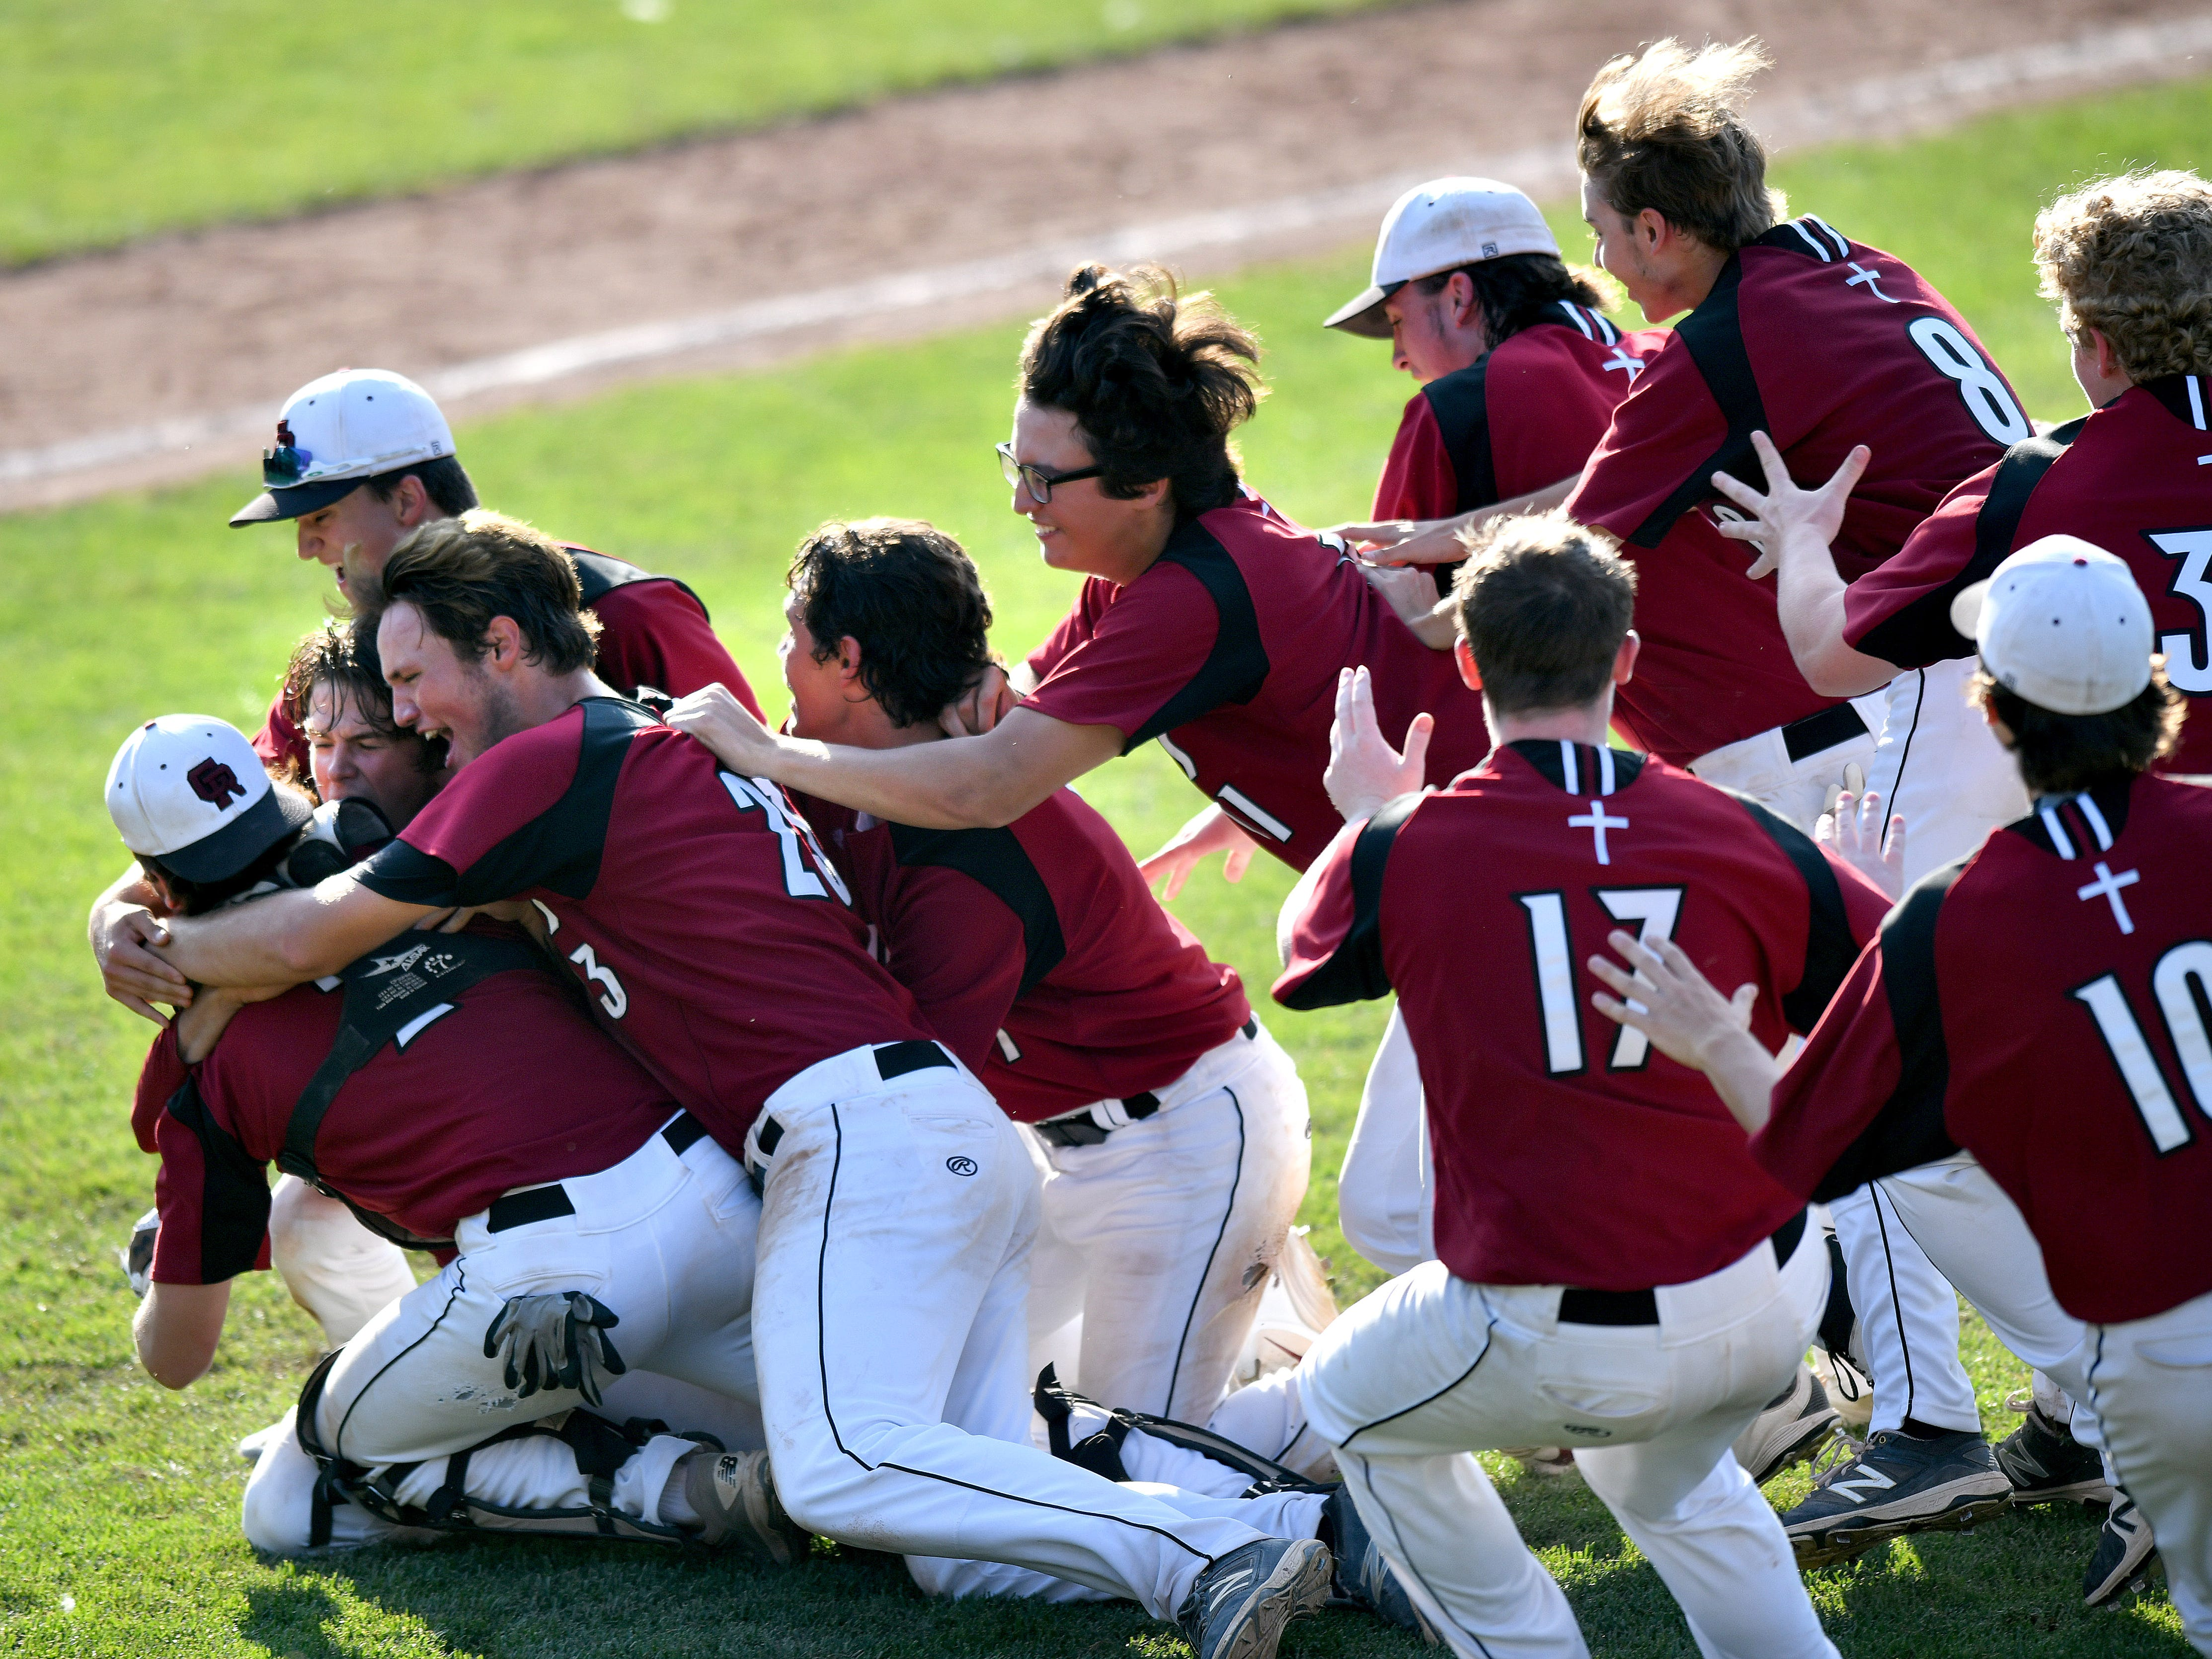 Riverview Gabriel Richard High School players pile on each other in celebration after they beat Madison Heights Bishop Foley, 3-0, in the MHSAA Division 3 baseball championship game at Michigan State University in East Lansing on Saturday, June 16, 2018.